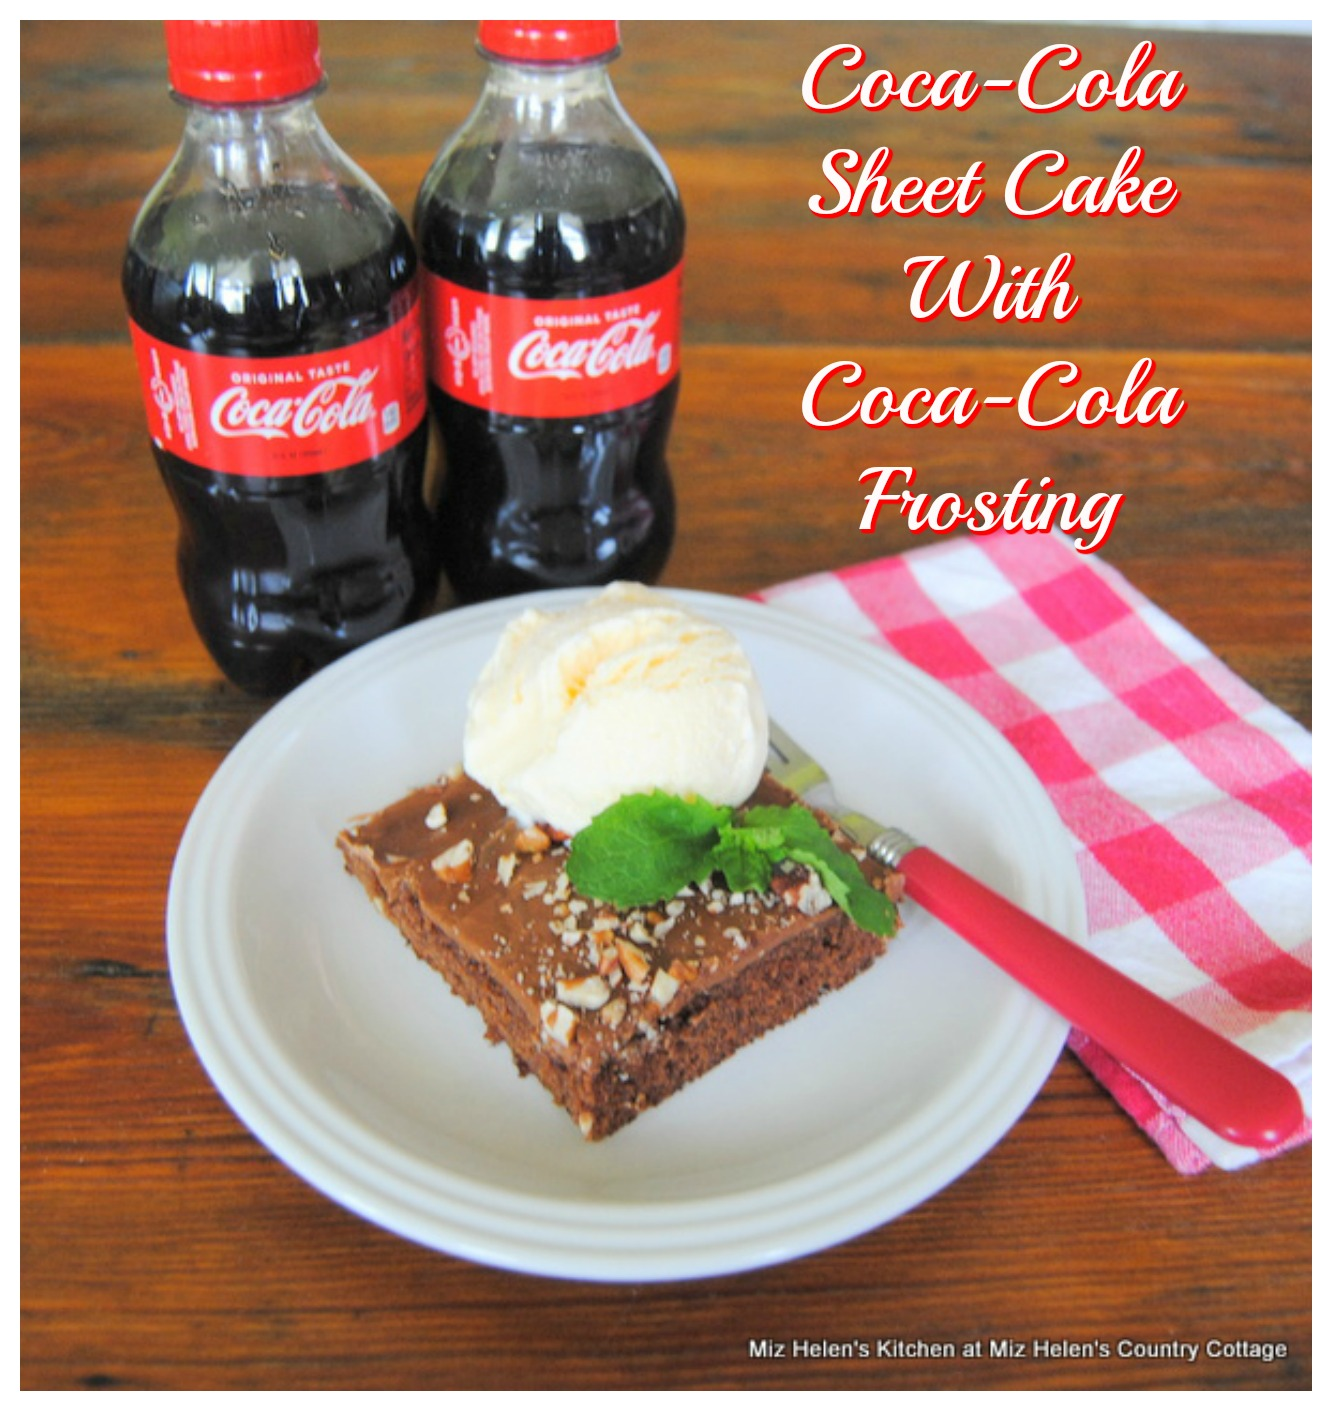 Coca Cola Sheet Cake With Coca Cola Frosting